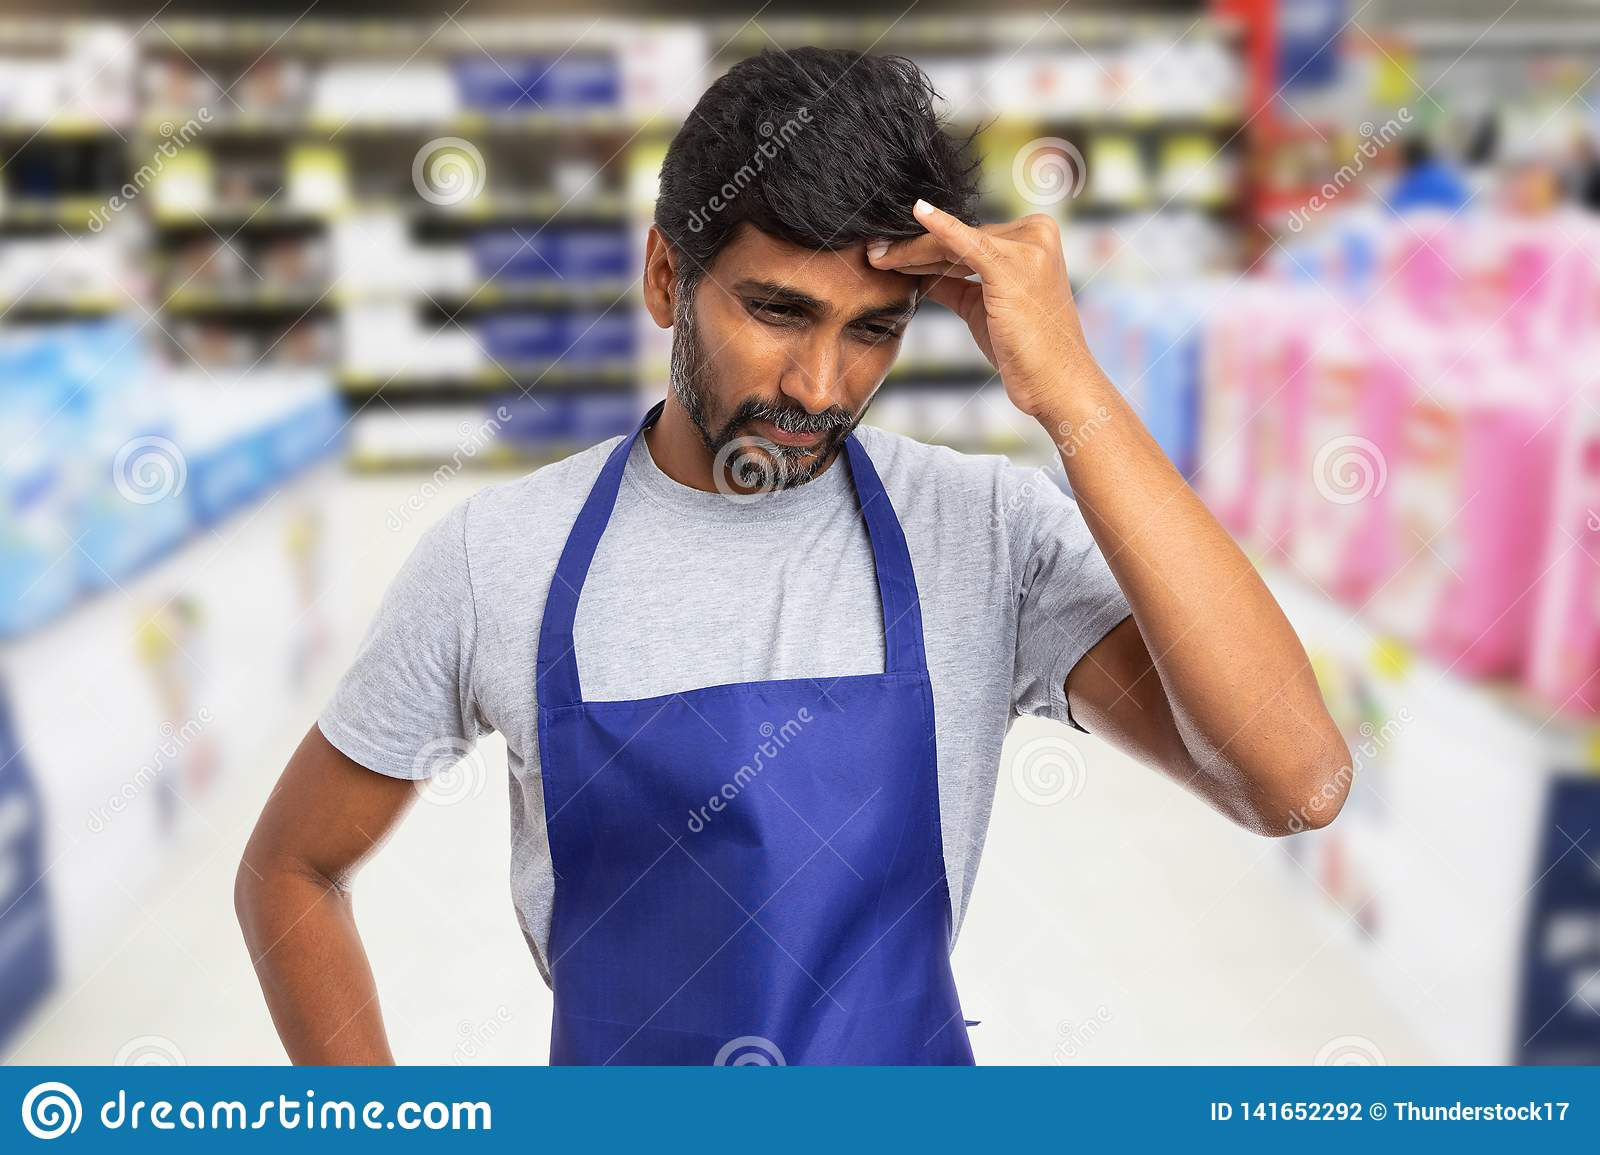 Hypermarket worker touching forehead as stress concept